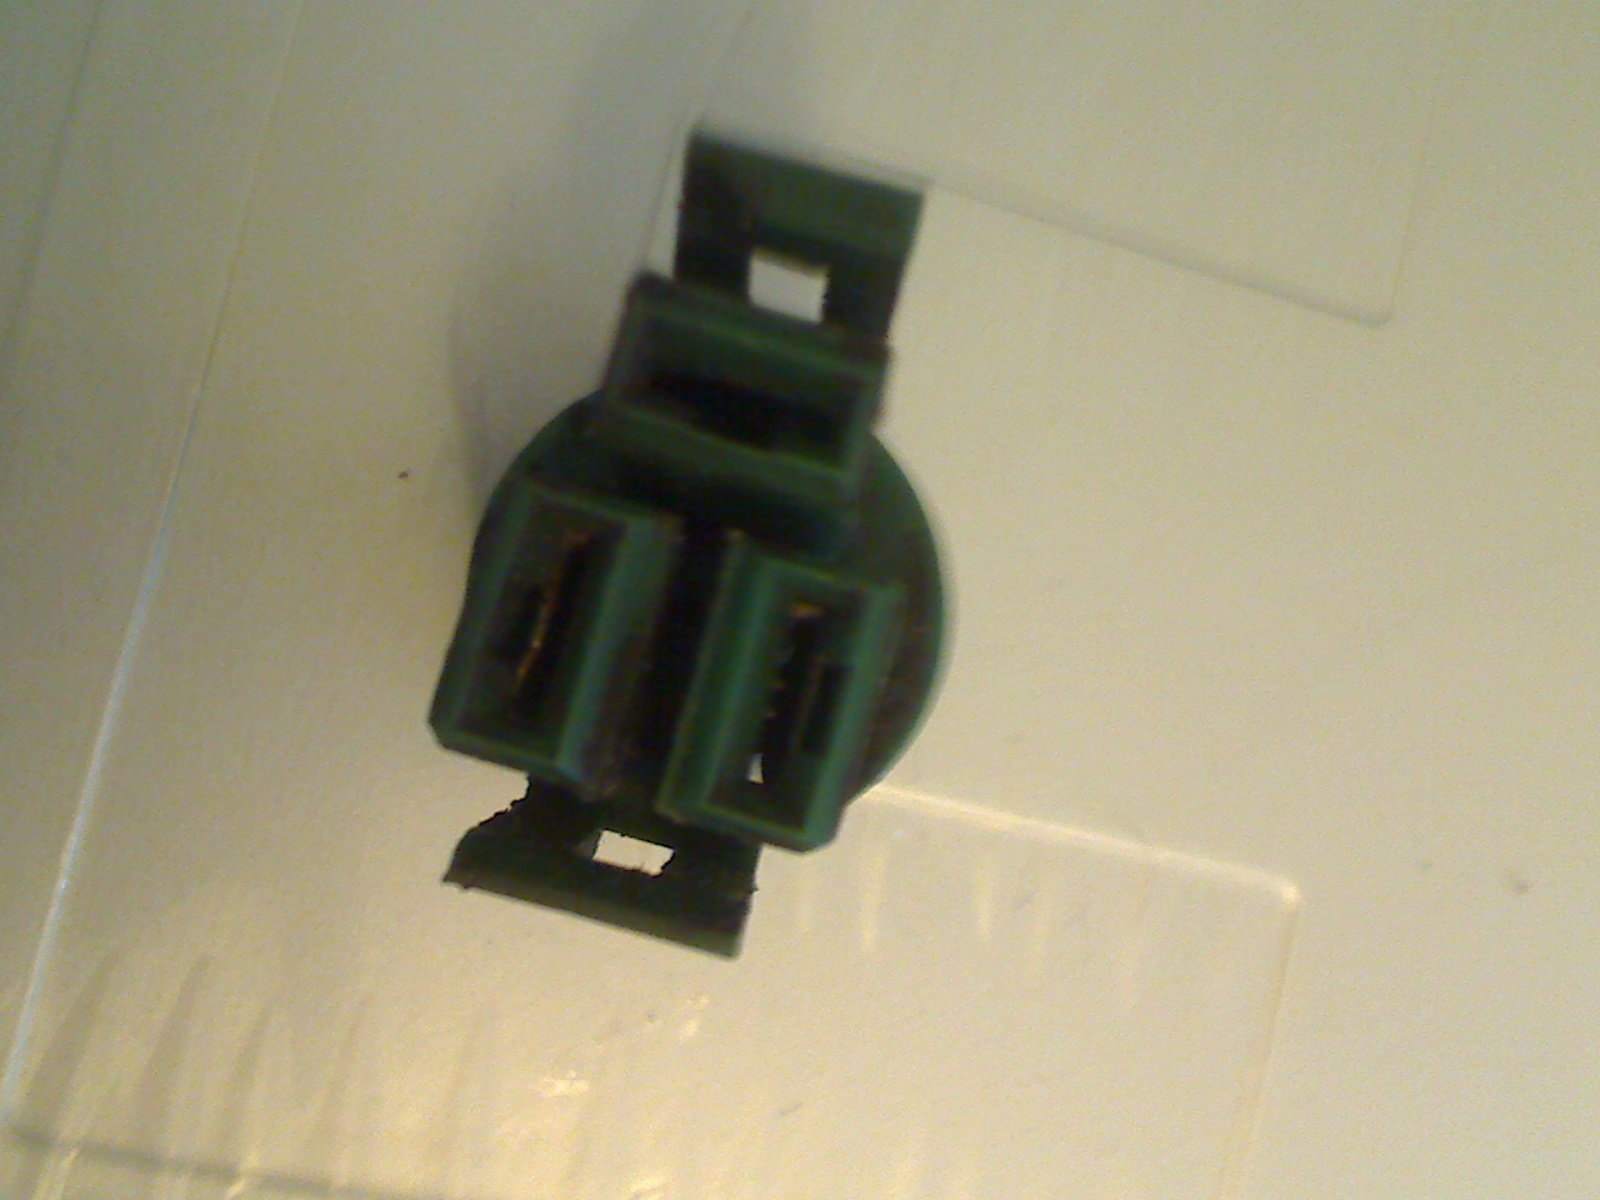 hight resolution of this is the square green plug that has two vertical slots and a horizontal one above them see photo